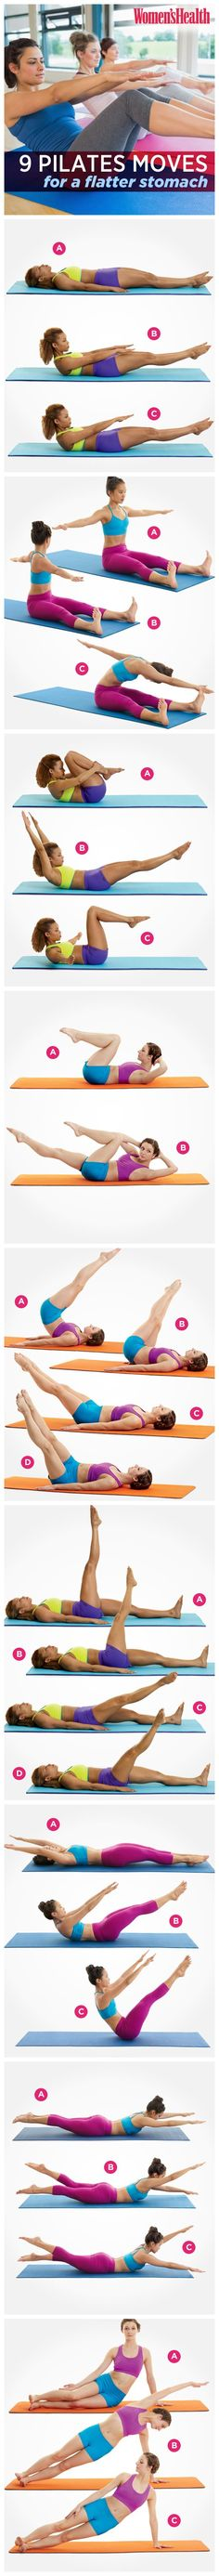 9 Flat Belly Pilates Moves #core #strong